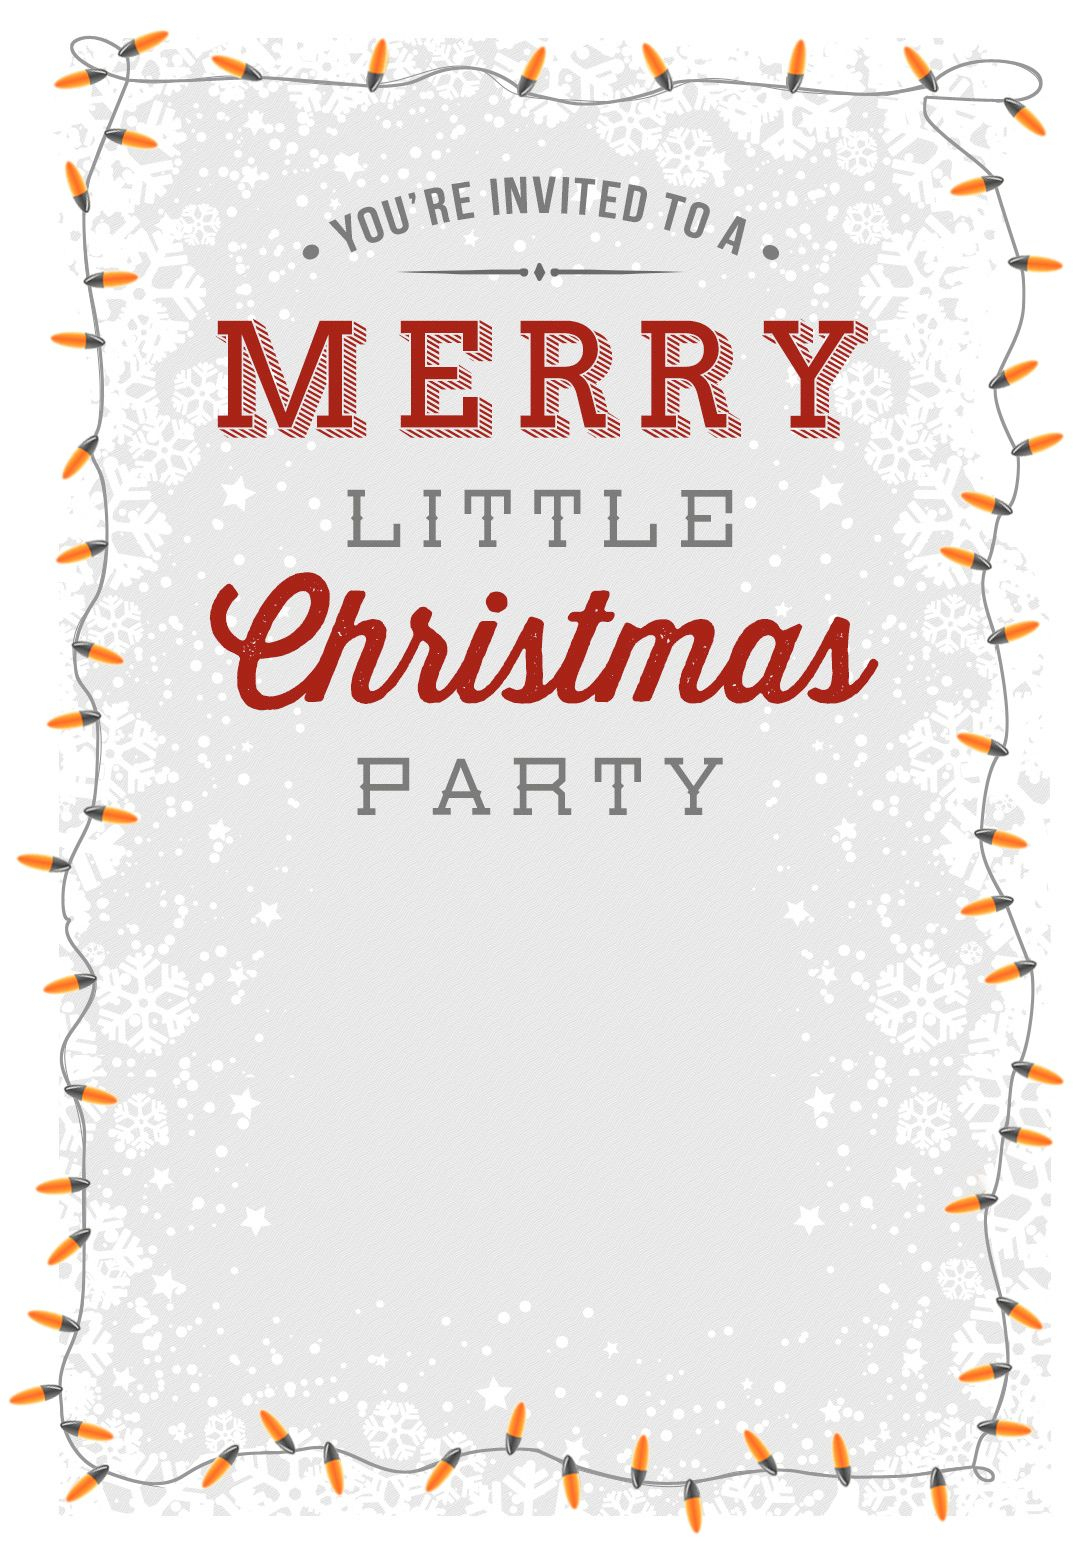 A Merry Little Party - Free Printable Christmas Invitation Template - Free Printable Religious Christmas Invitations